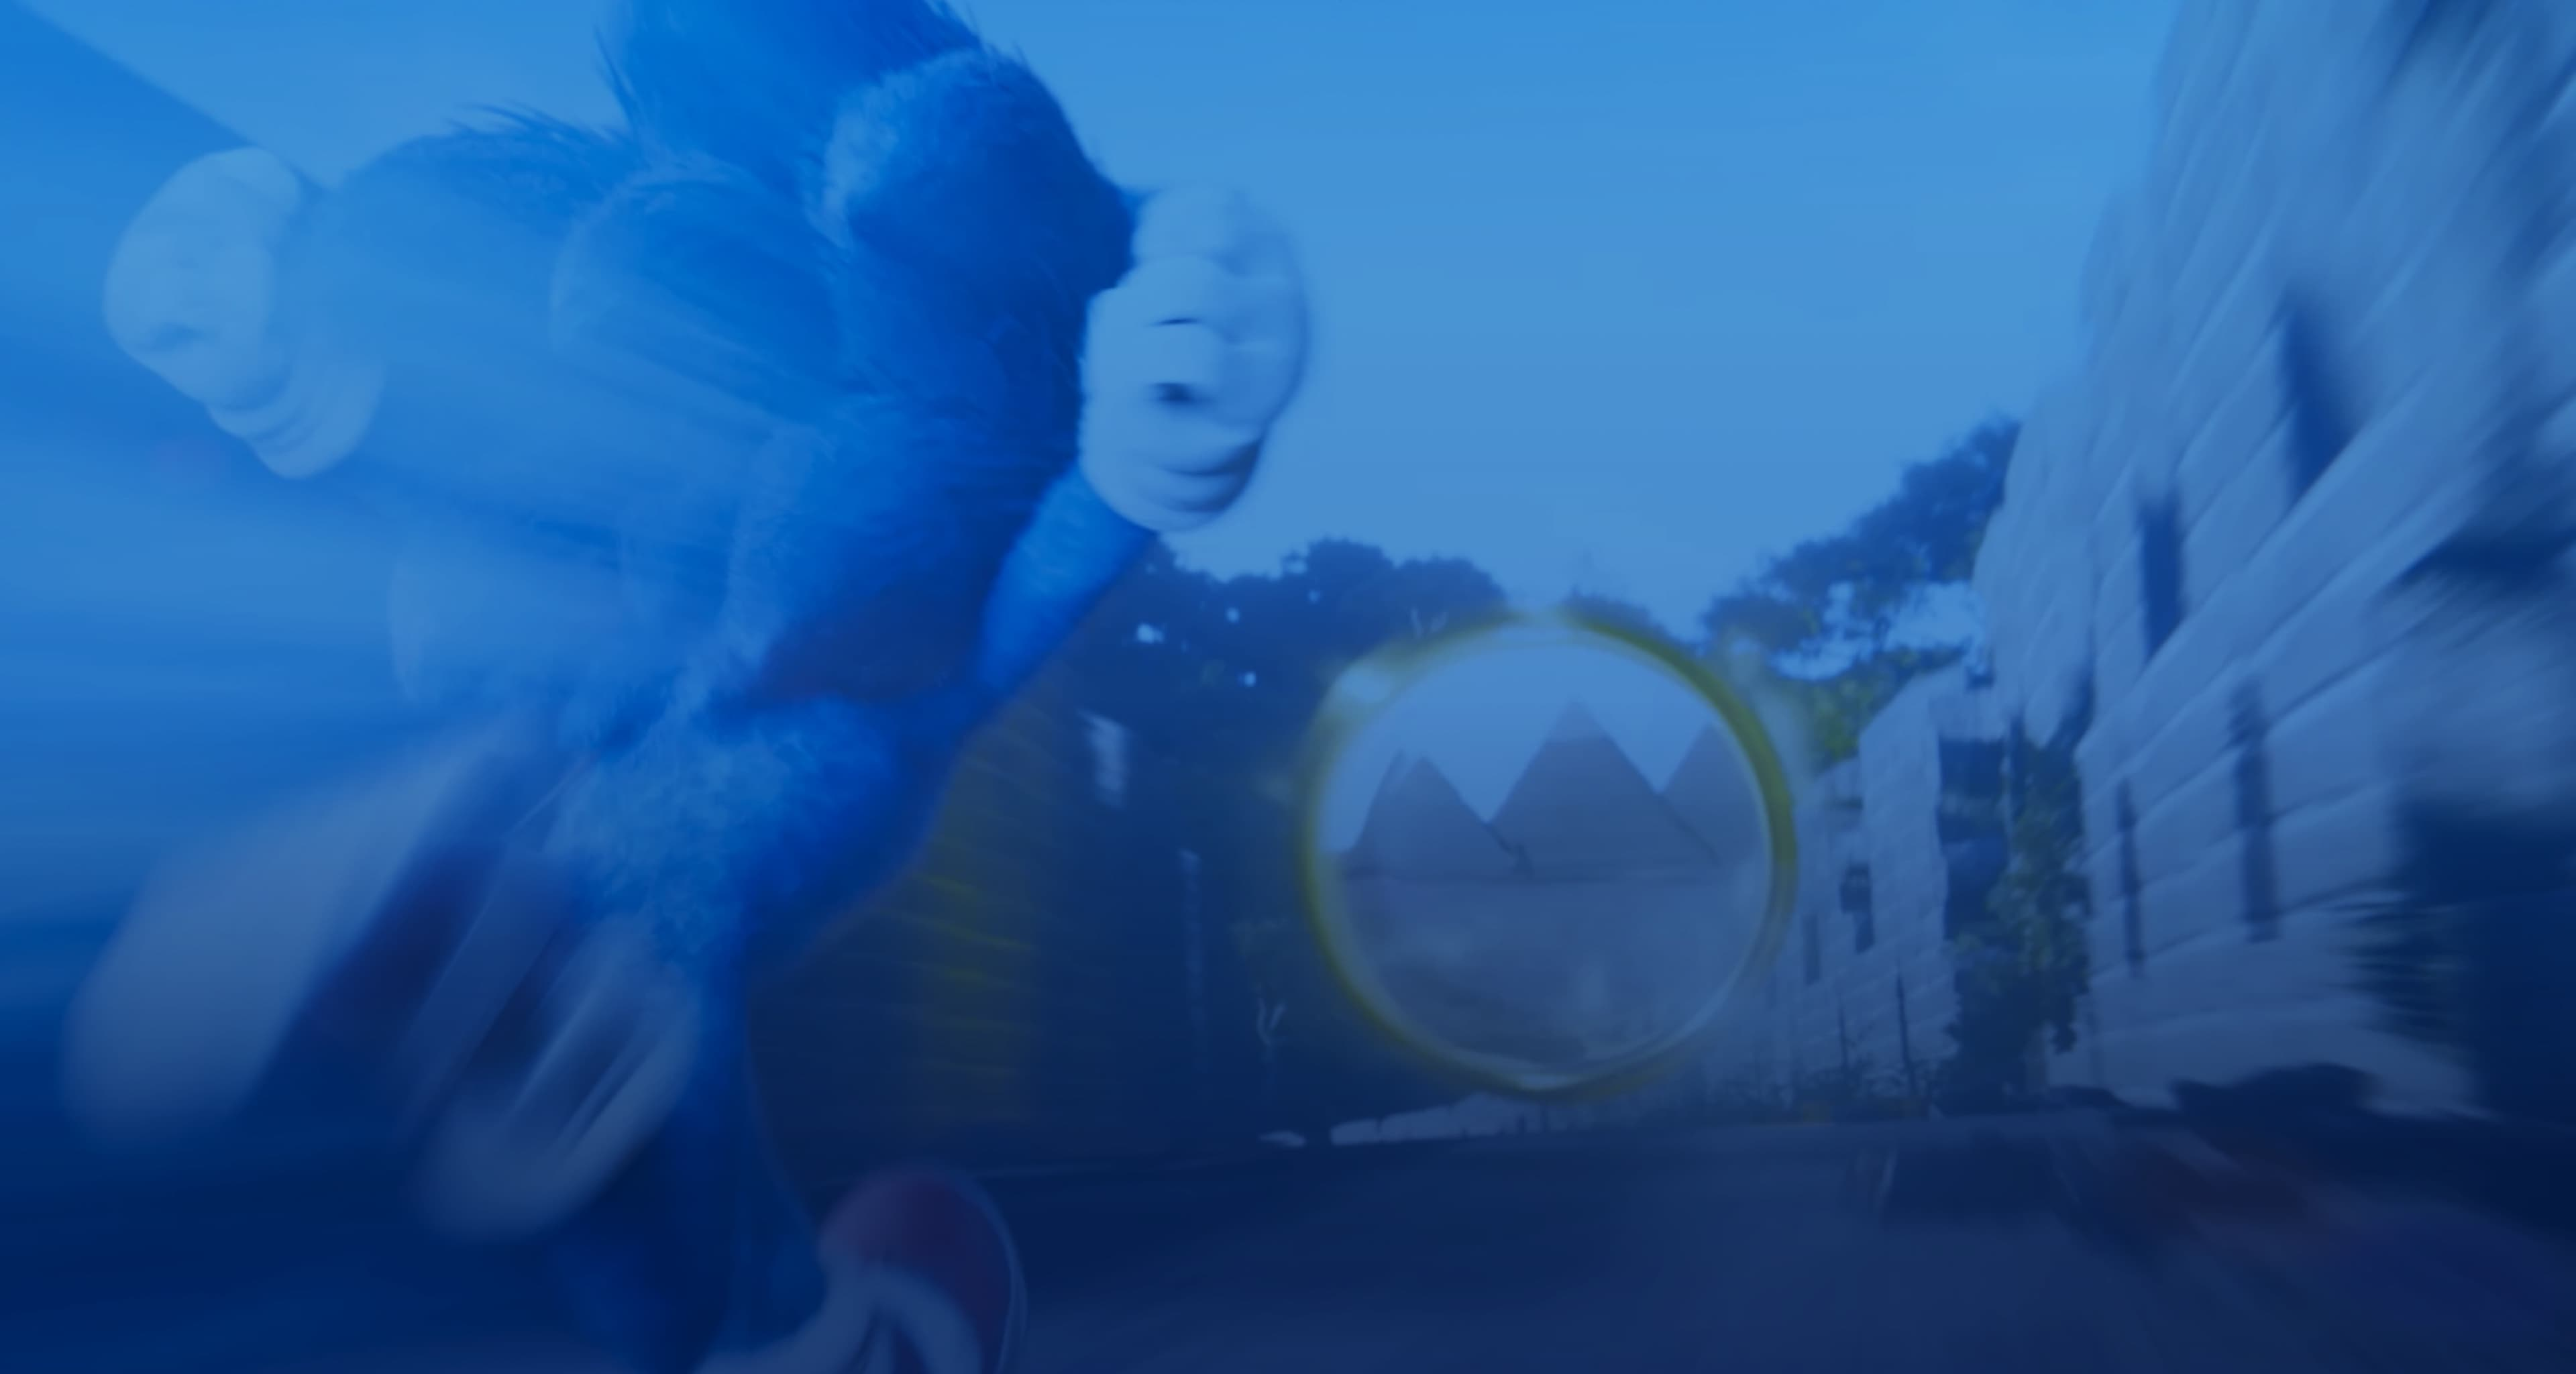 background image for Sonic promo page